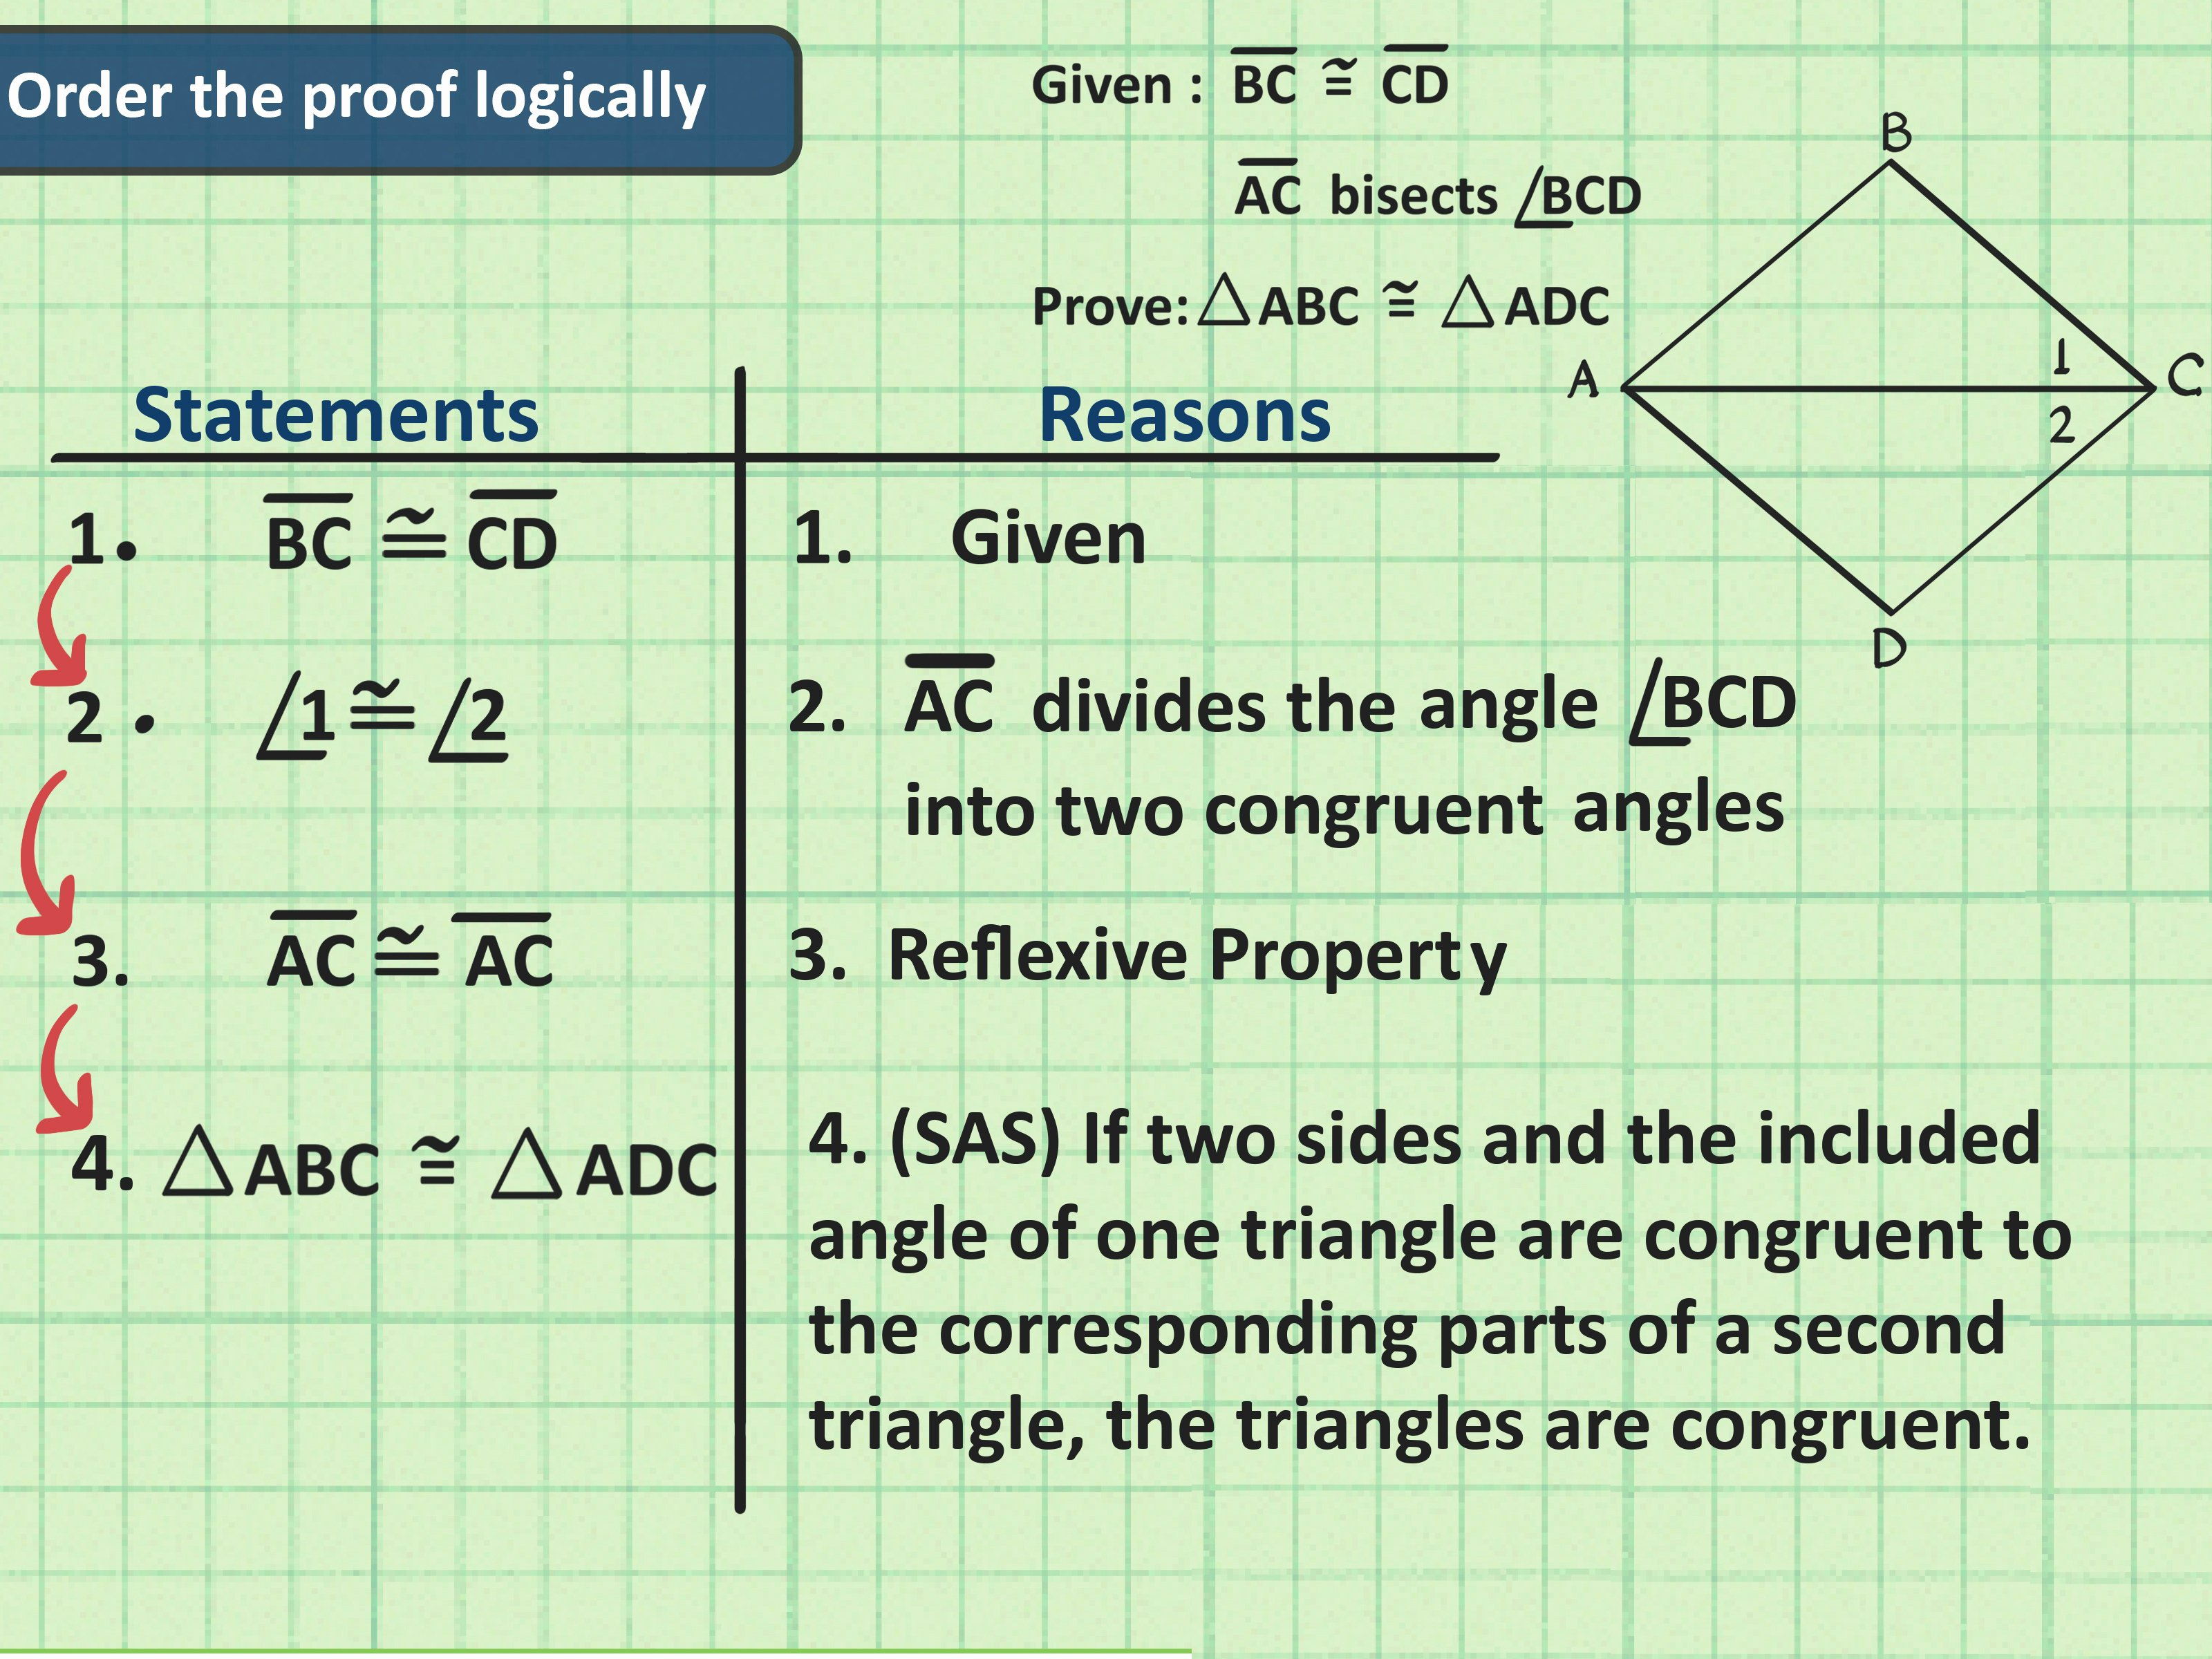 Triangle Congruence Proof Worksheet Awesome How to Write A Congruent Triangles Geometry Proof 7 Steps